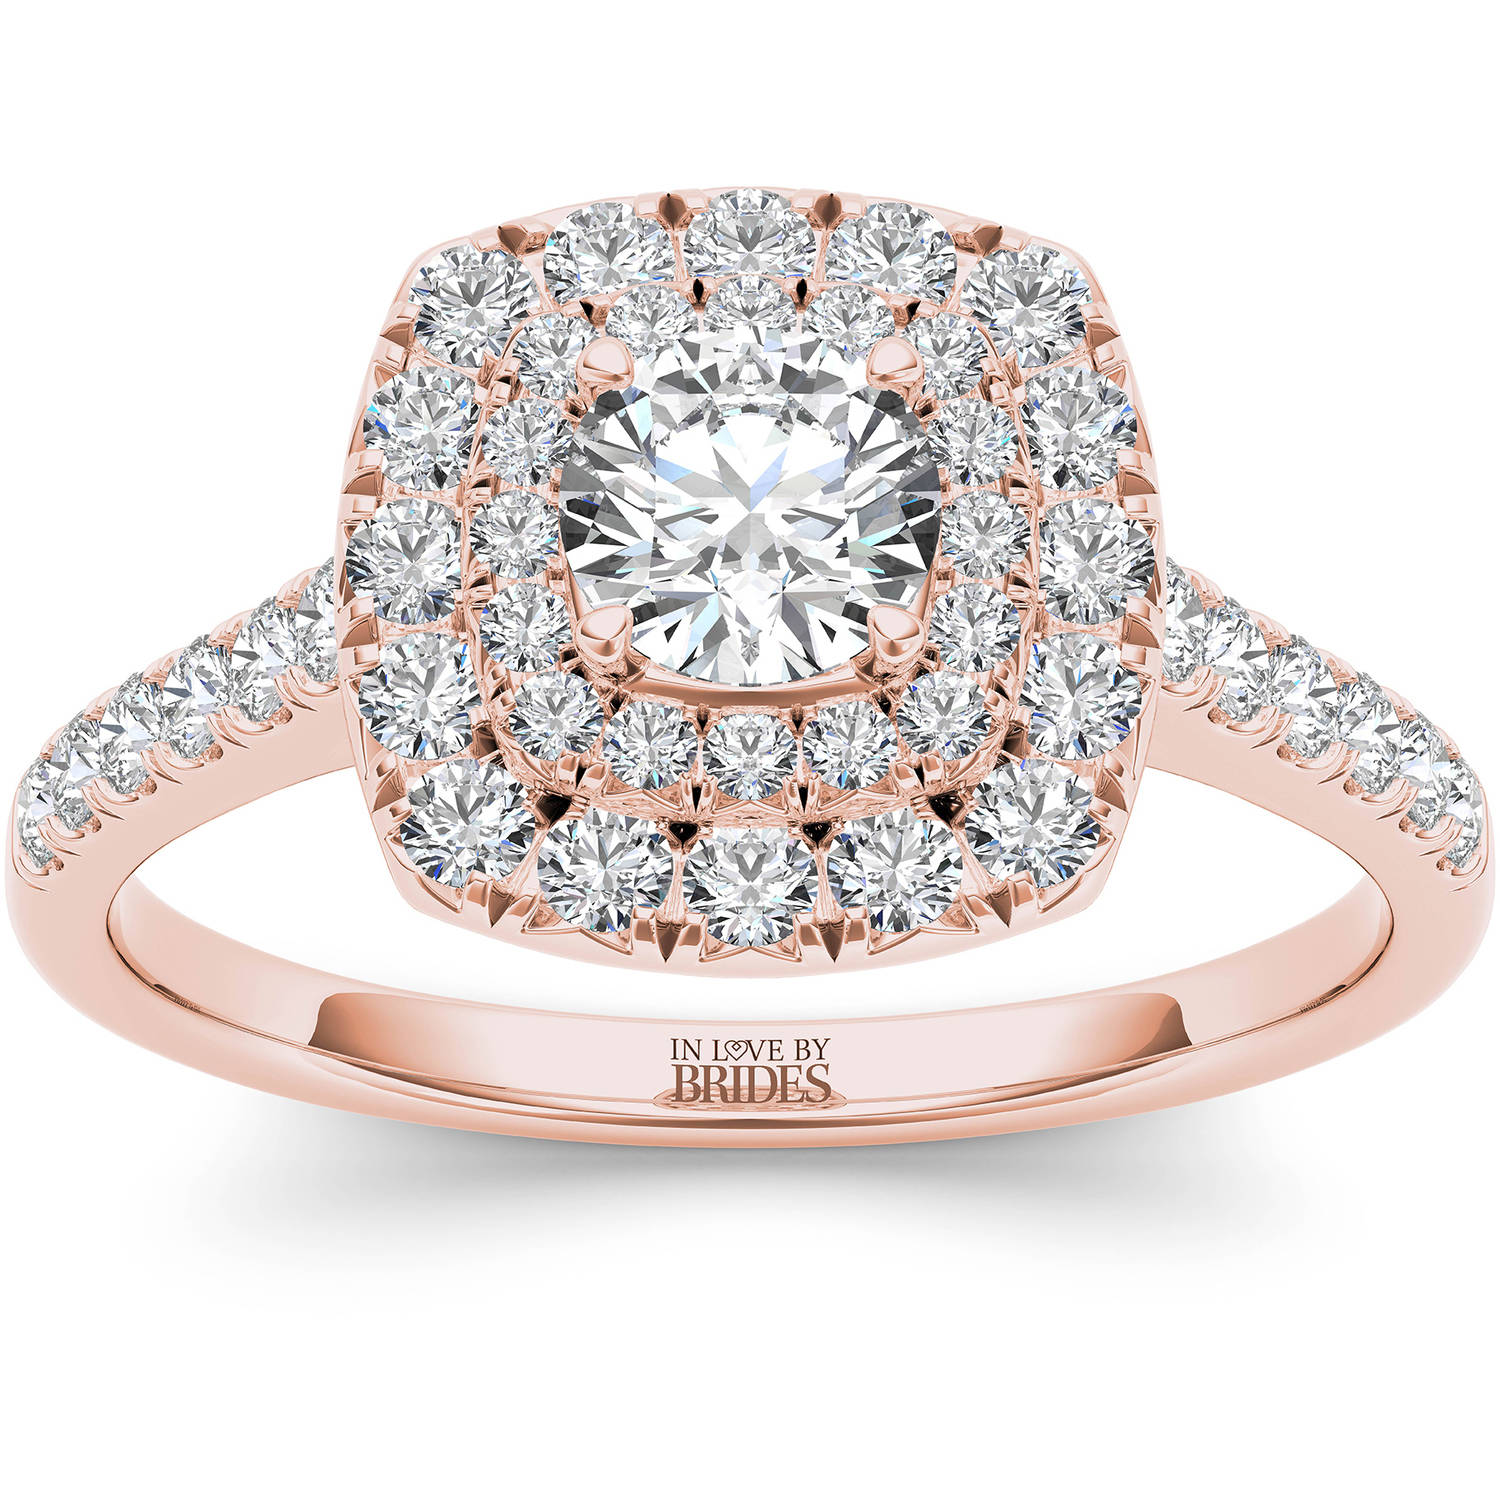 IN LOVE BY BRIDES 1.00 Carat T.W. Certified Diamond Cushion Double Halo 14kt Pink Gold Engagement Ring